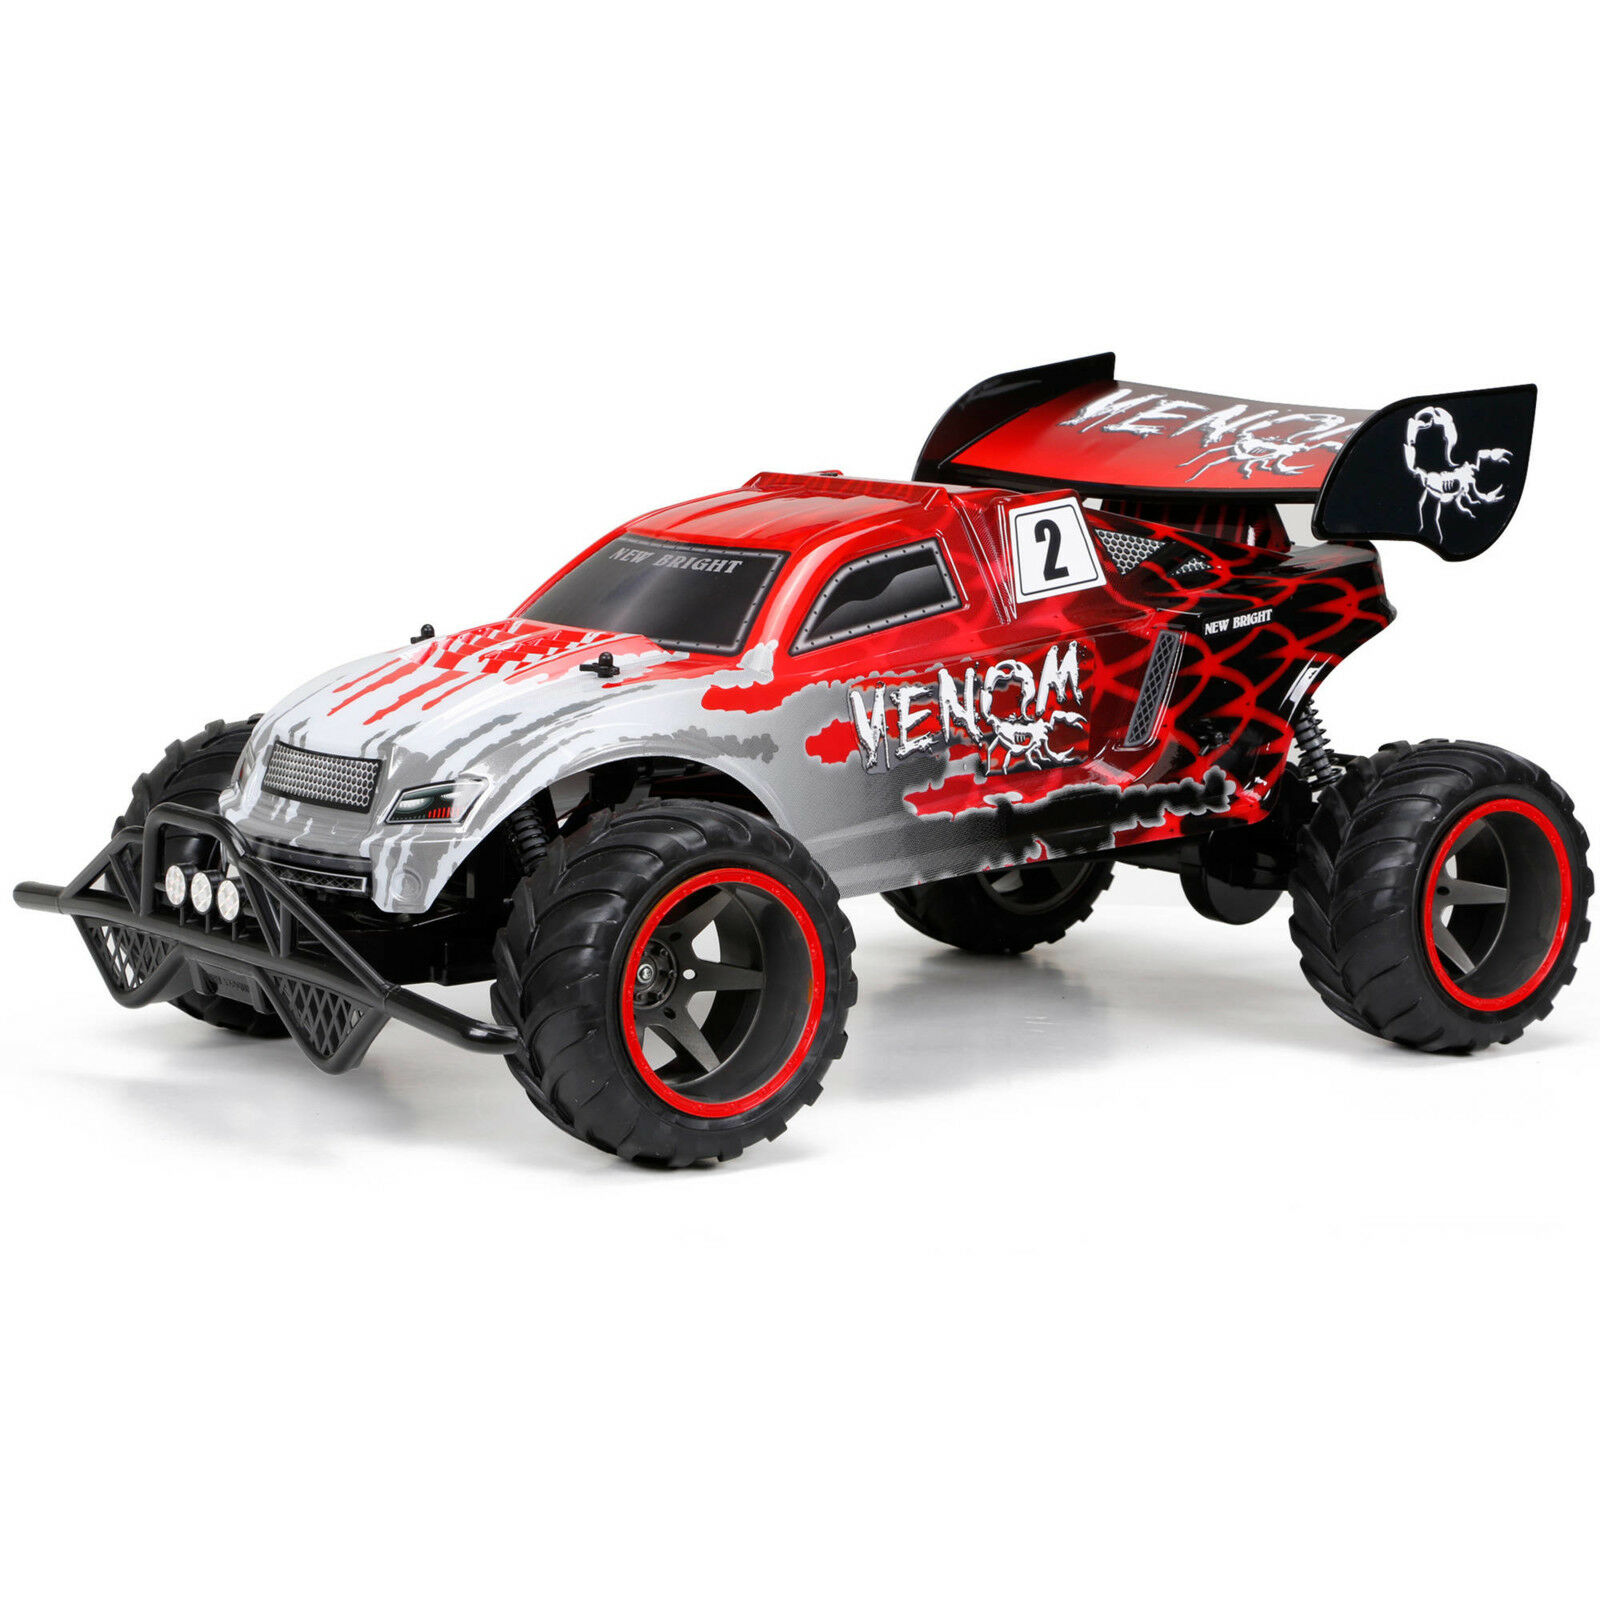 Bright 1 6 6 6 9.6V Venom R C Car Red Remote Control Toy Hobby Car Race Best New 05d650